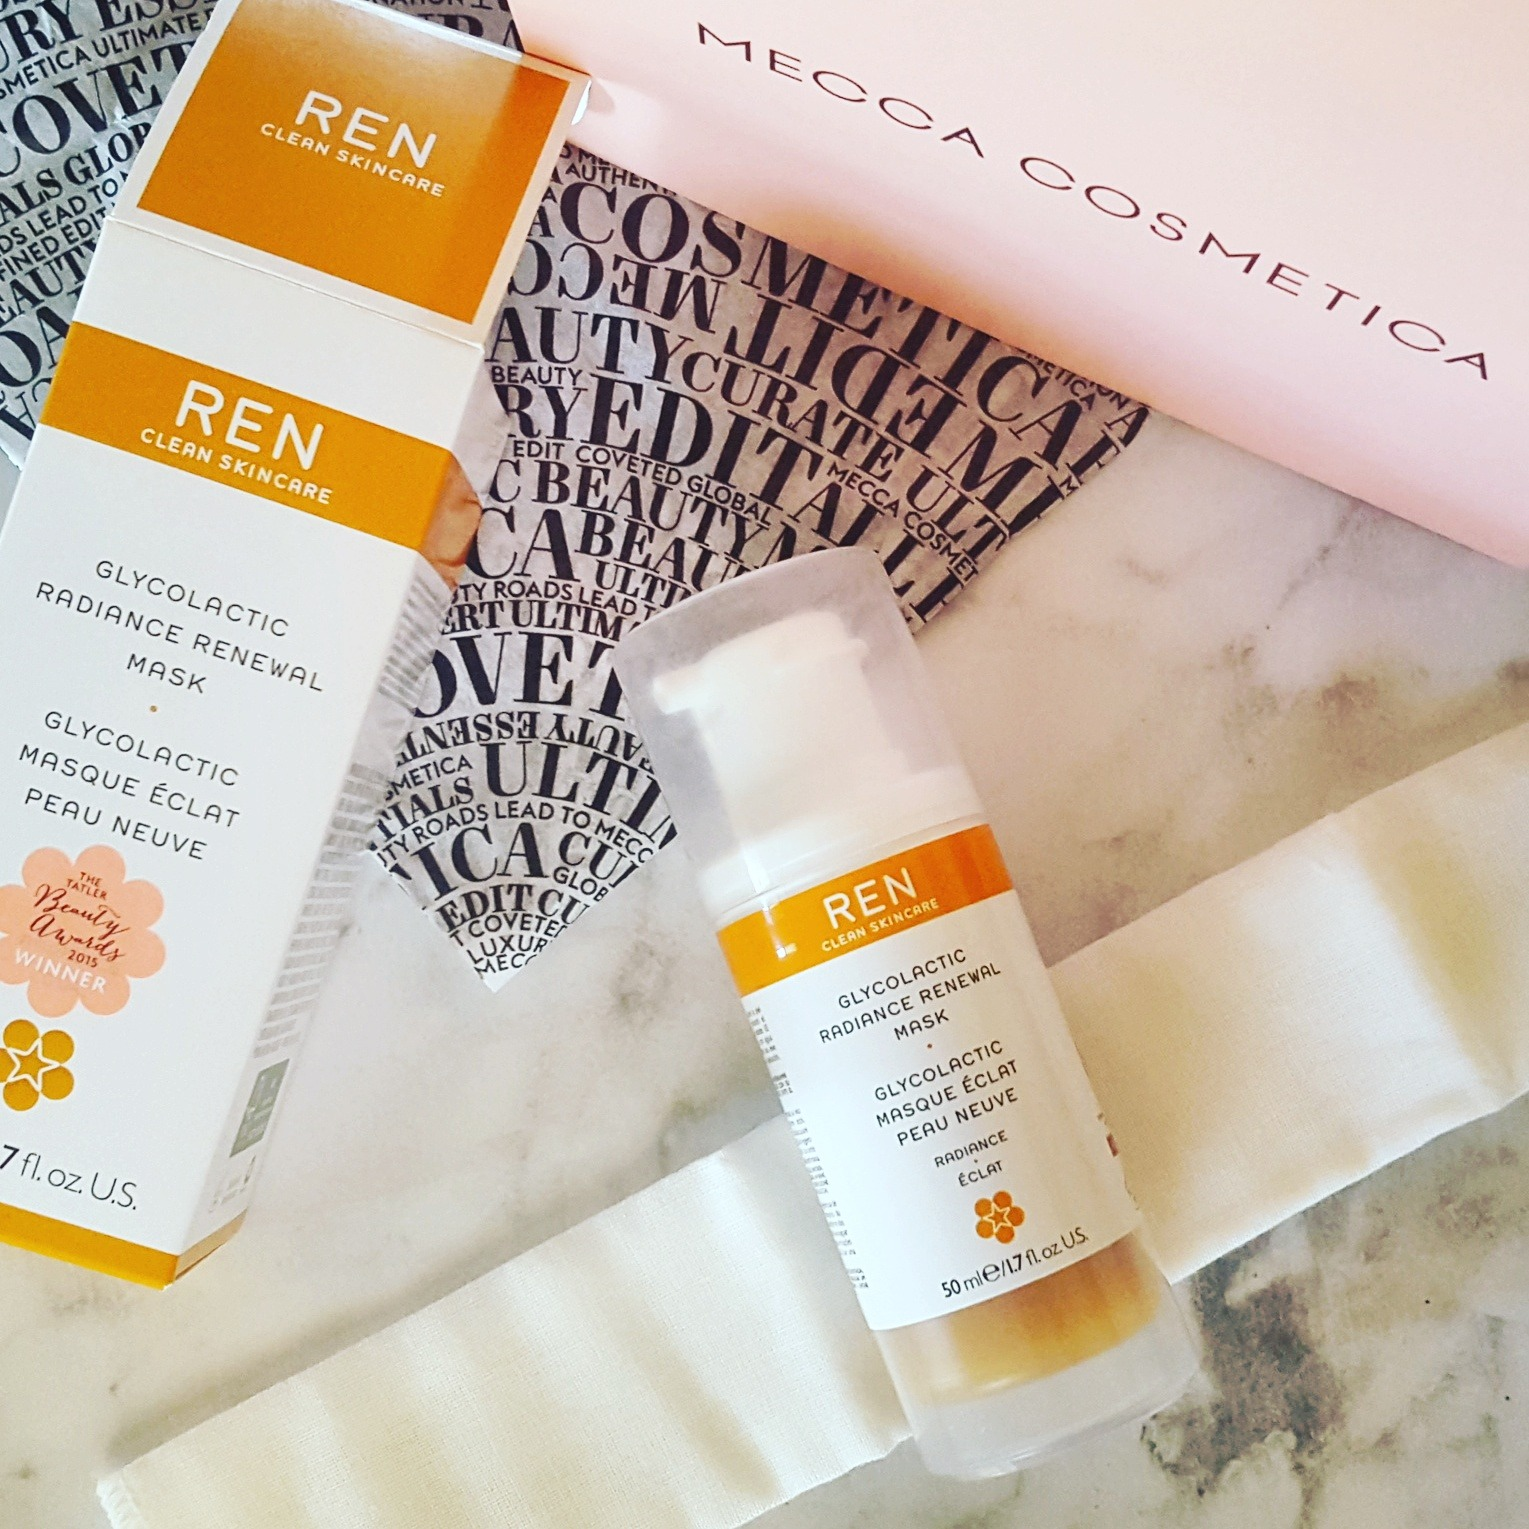 A new discovery: Ren Glycolactic Radiance Renewal Mask